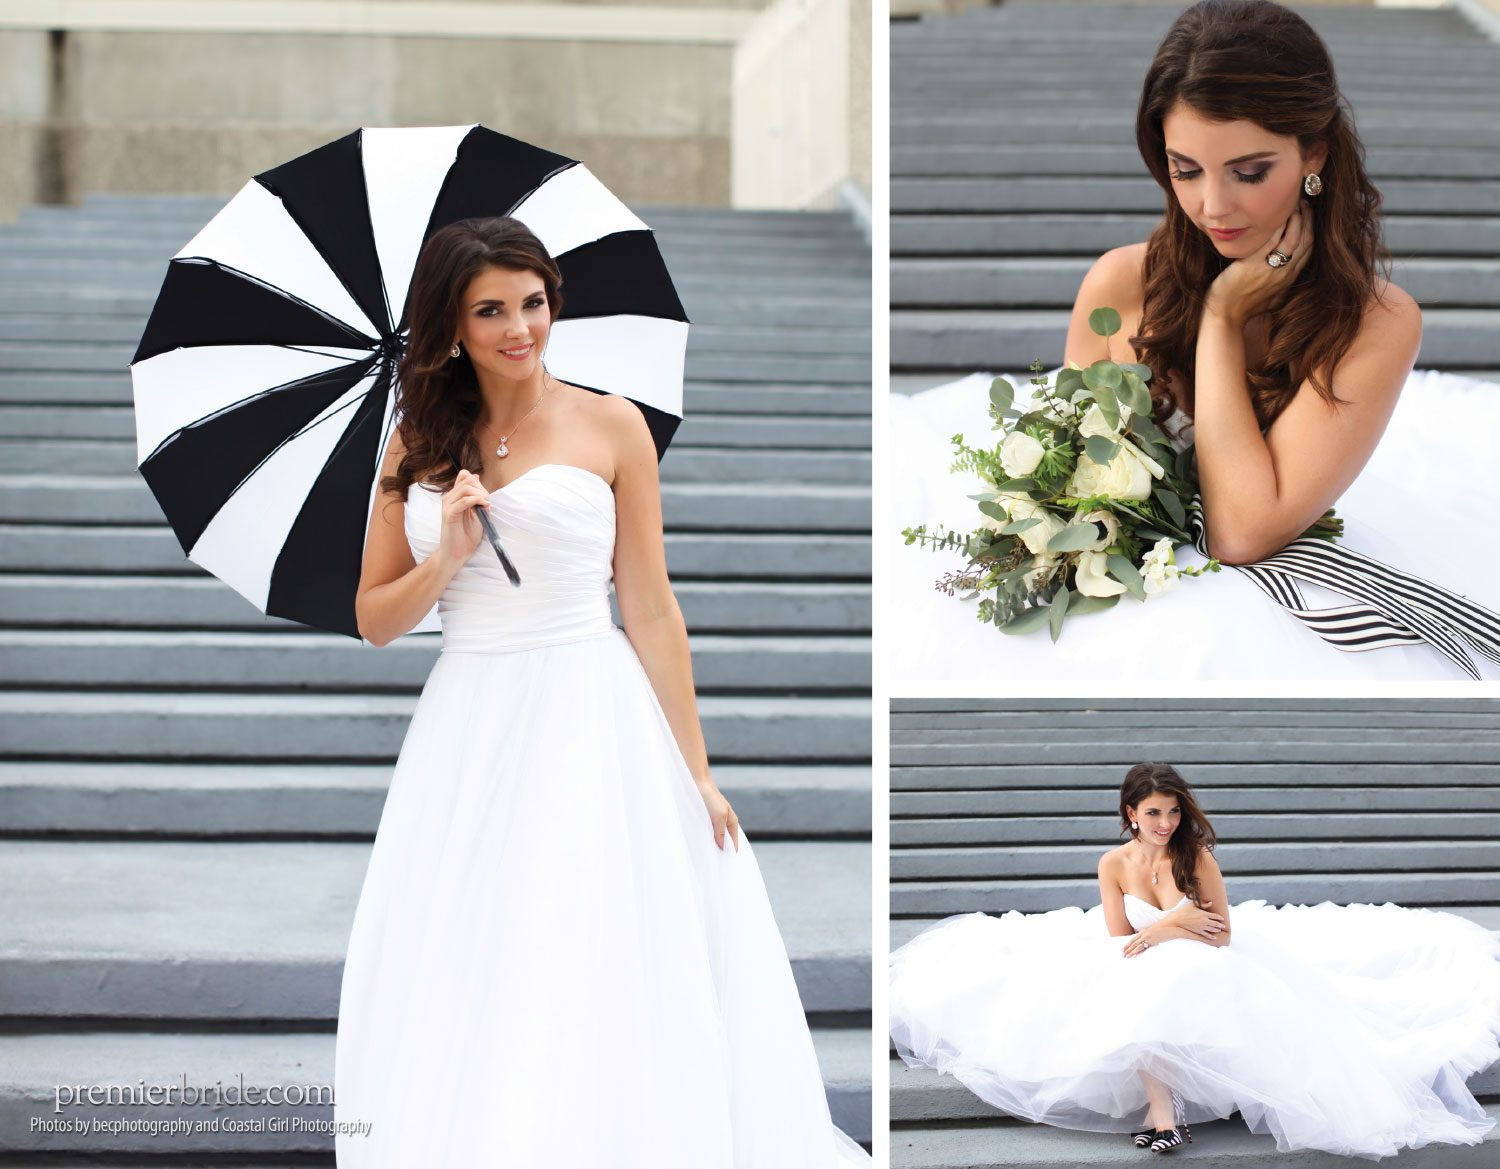 Love Bridal Boutique, photos by becphotography